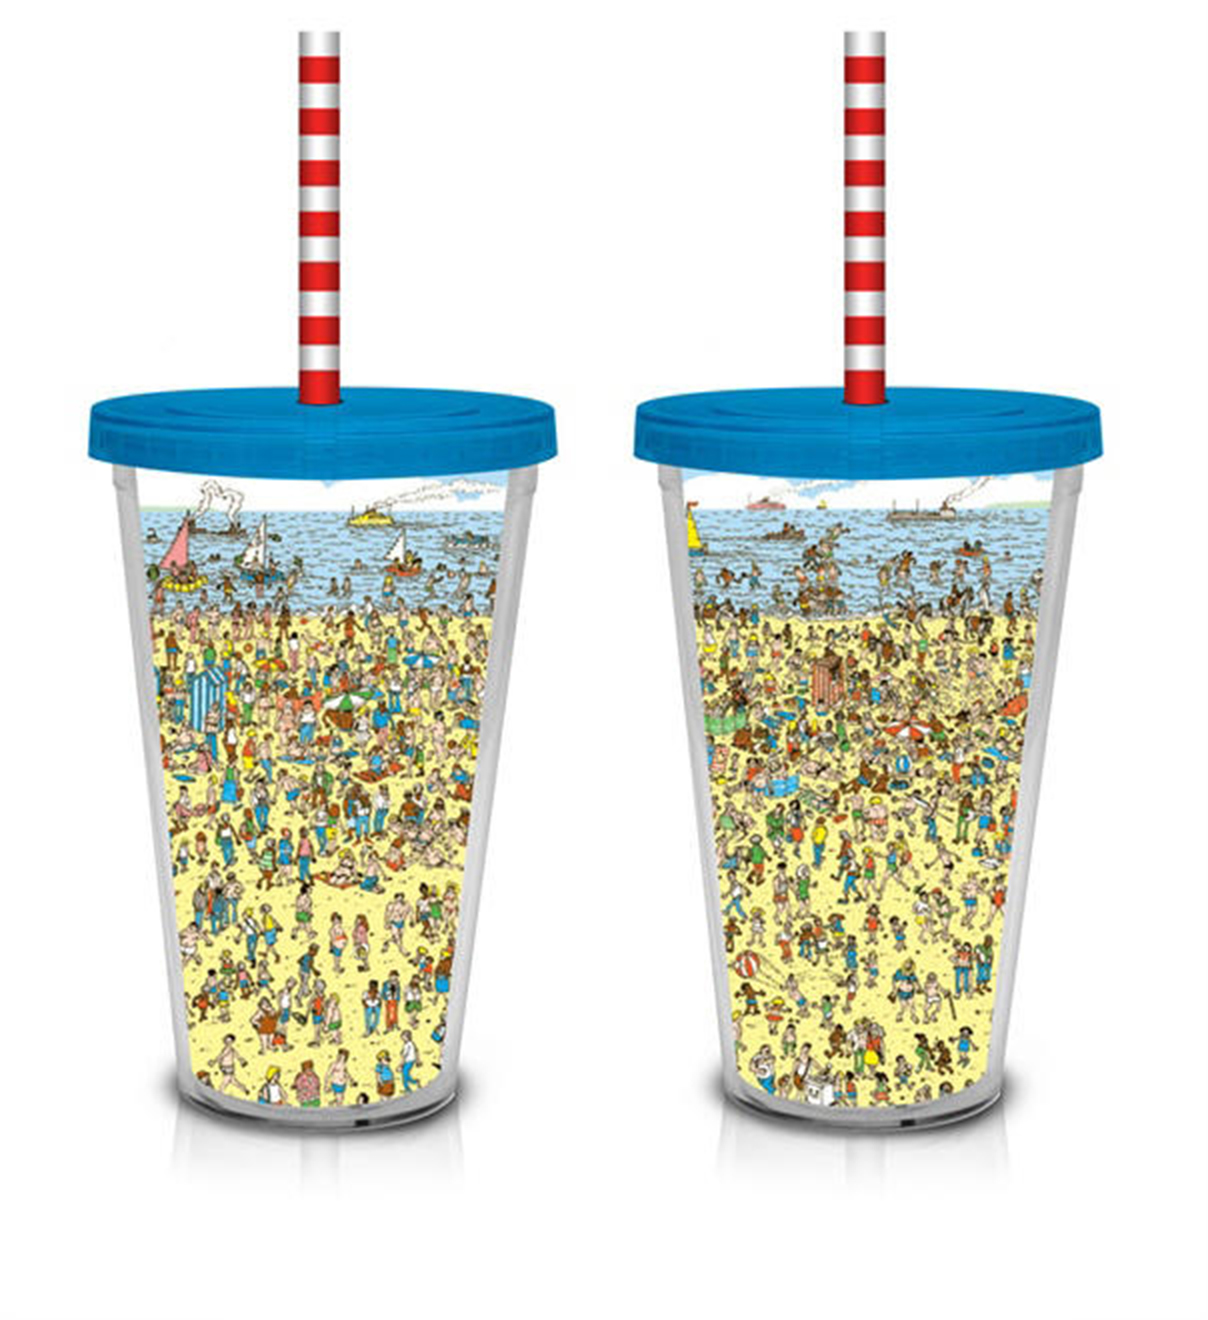 Image of Where's Waldo Beach Scene 16 oz. Plastic Cup with Straw